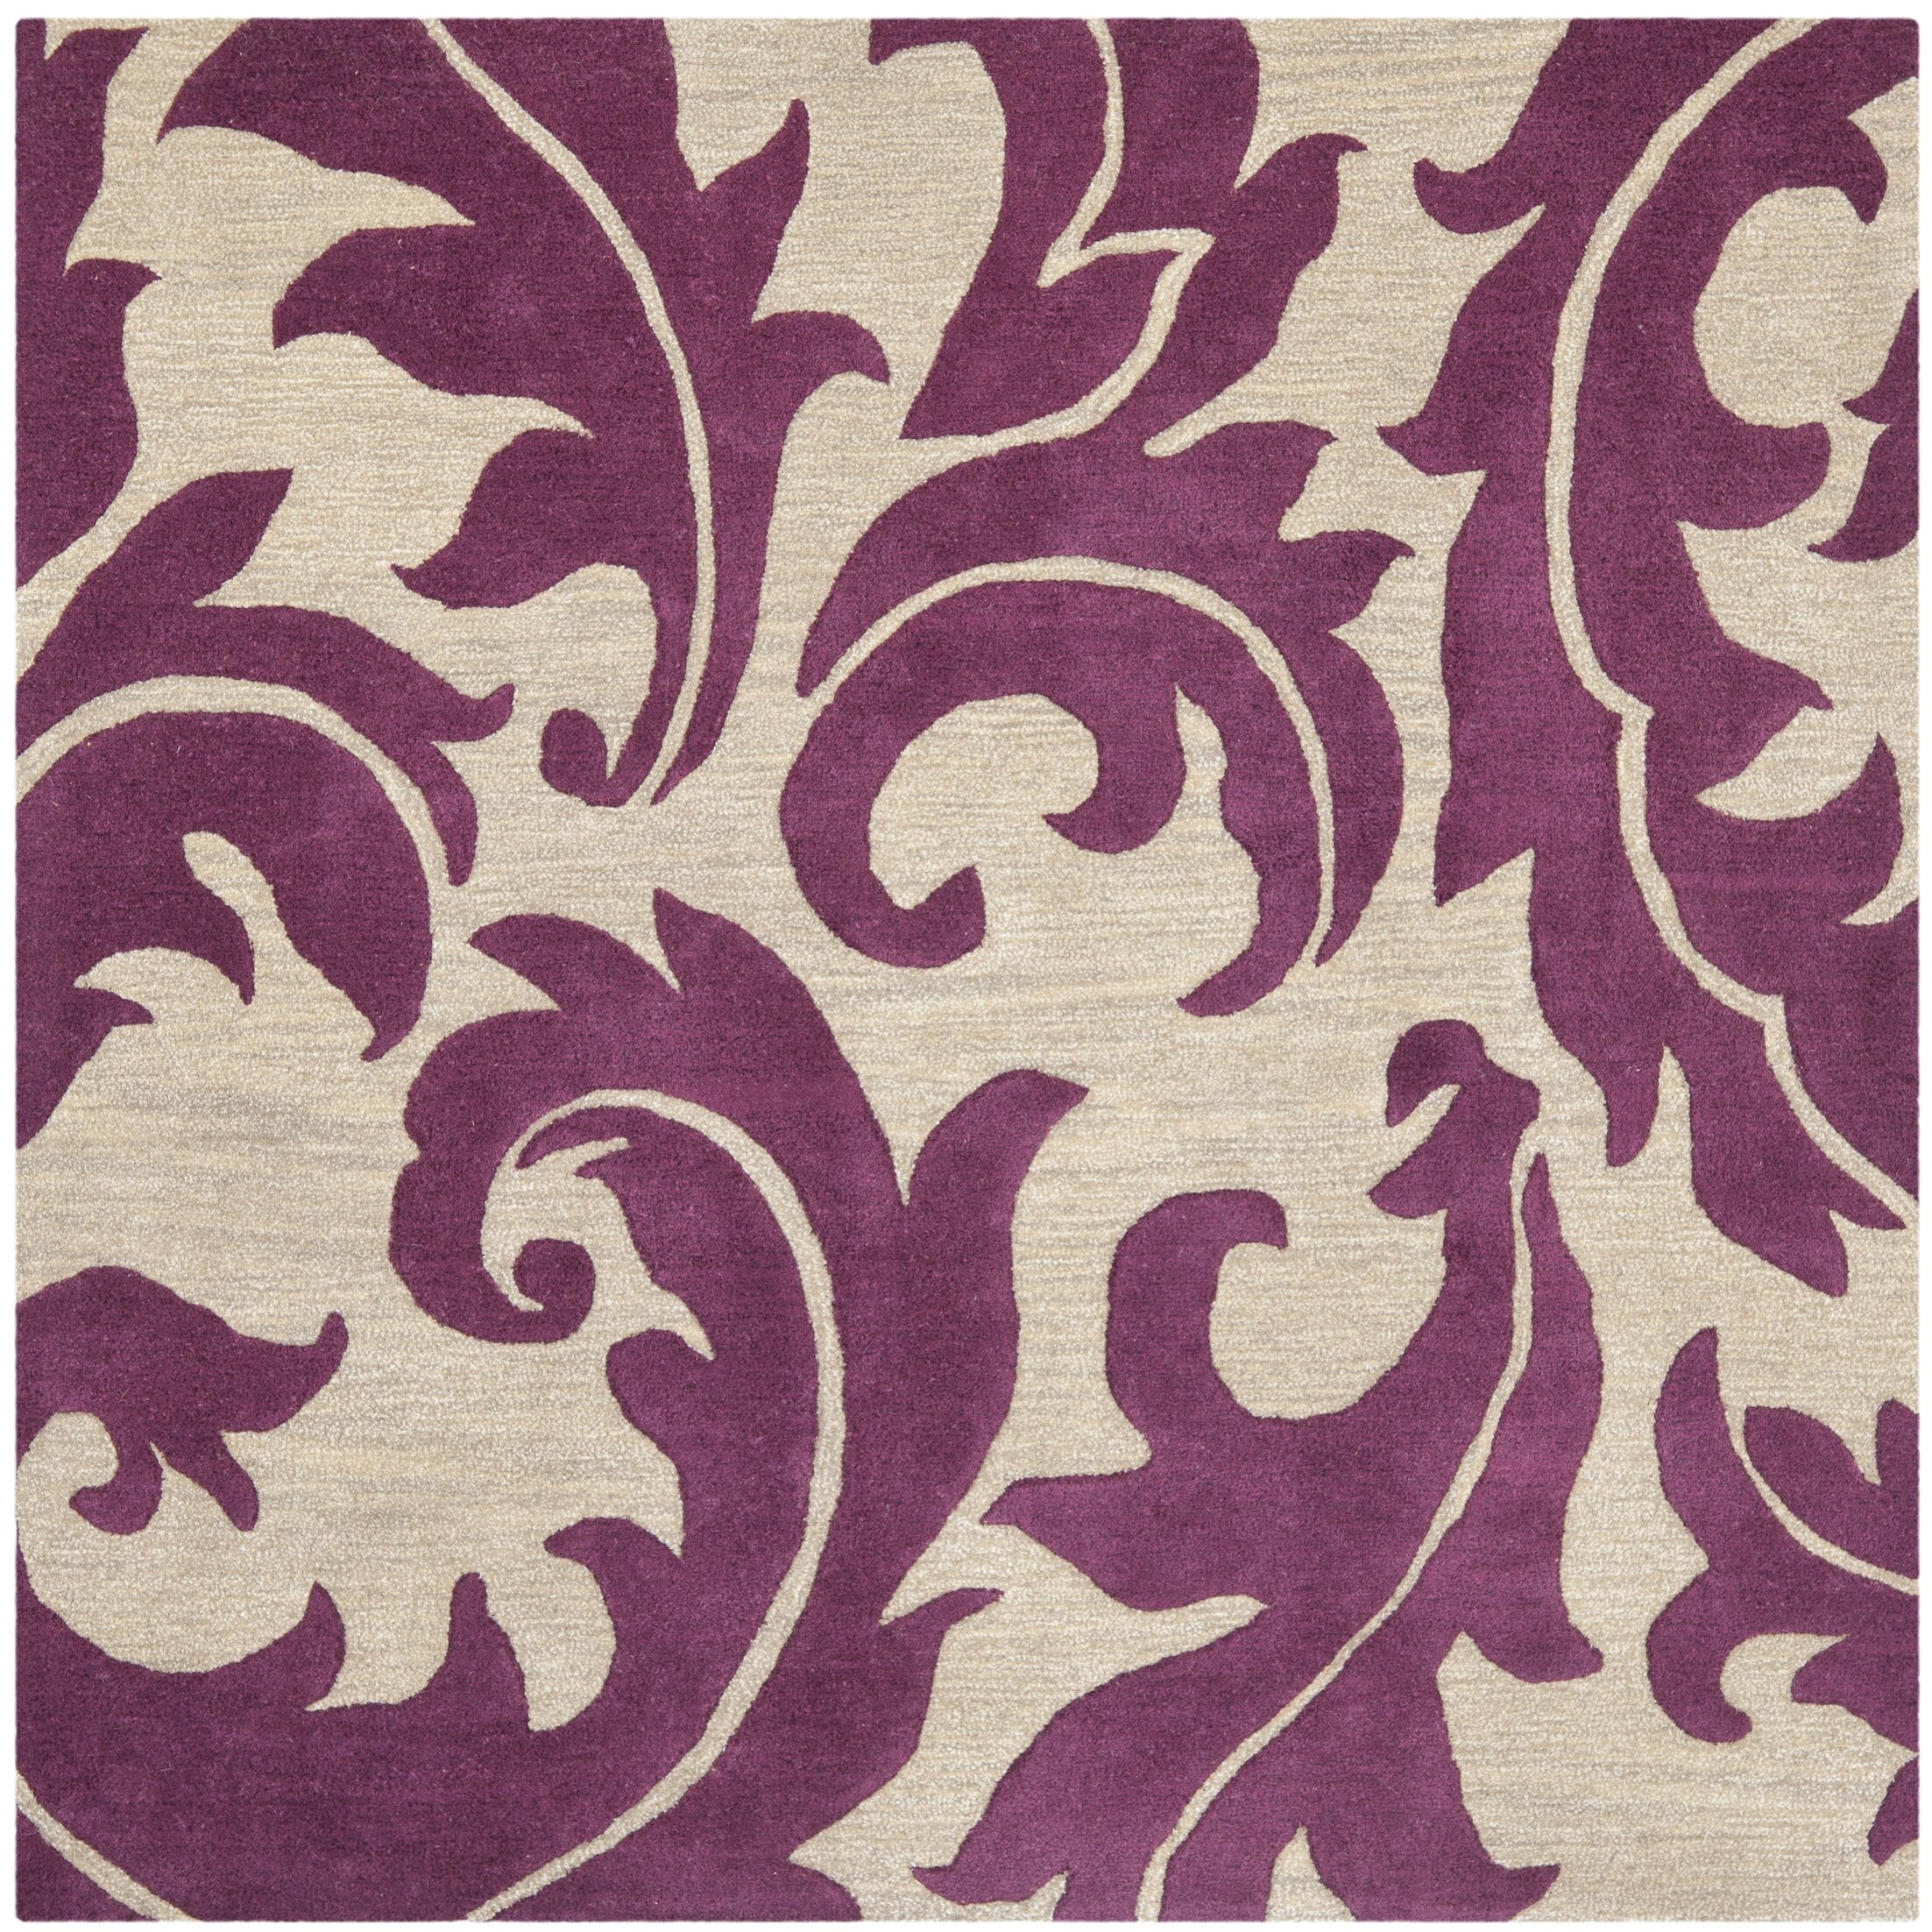 Maxen Purple/Beige Area Rug Rug Size: Square 6'